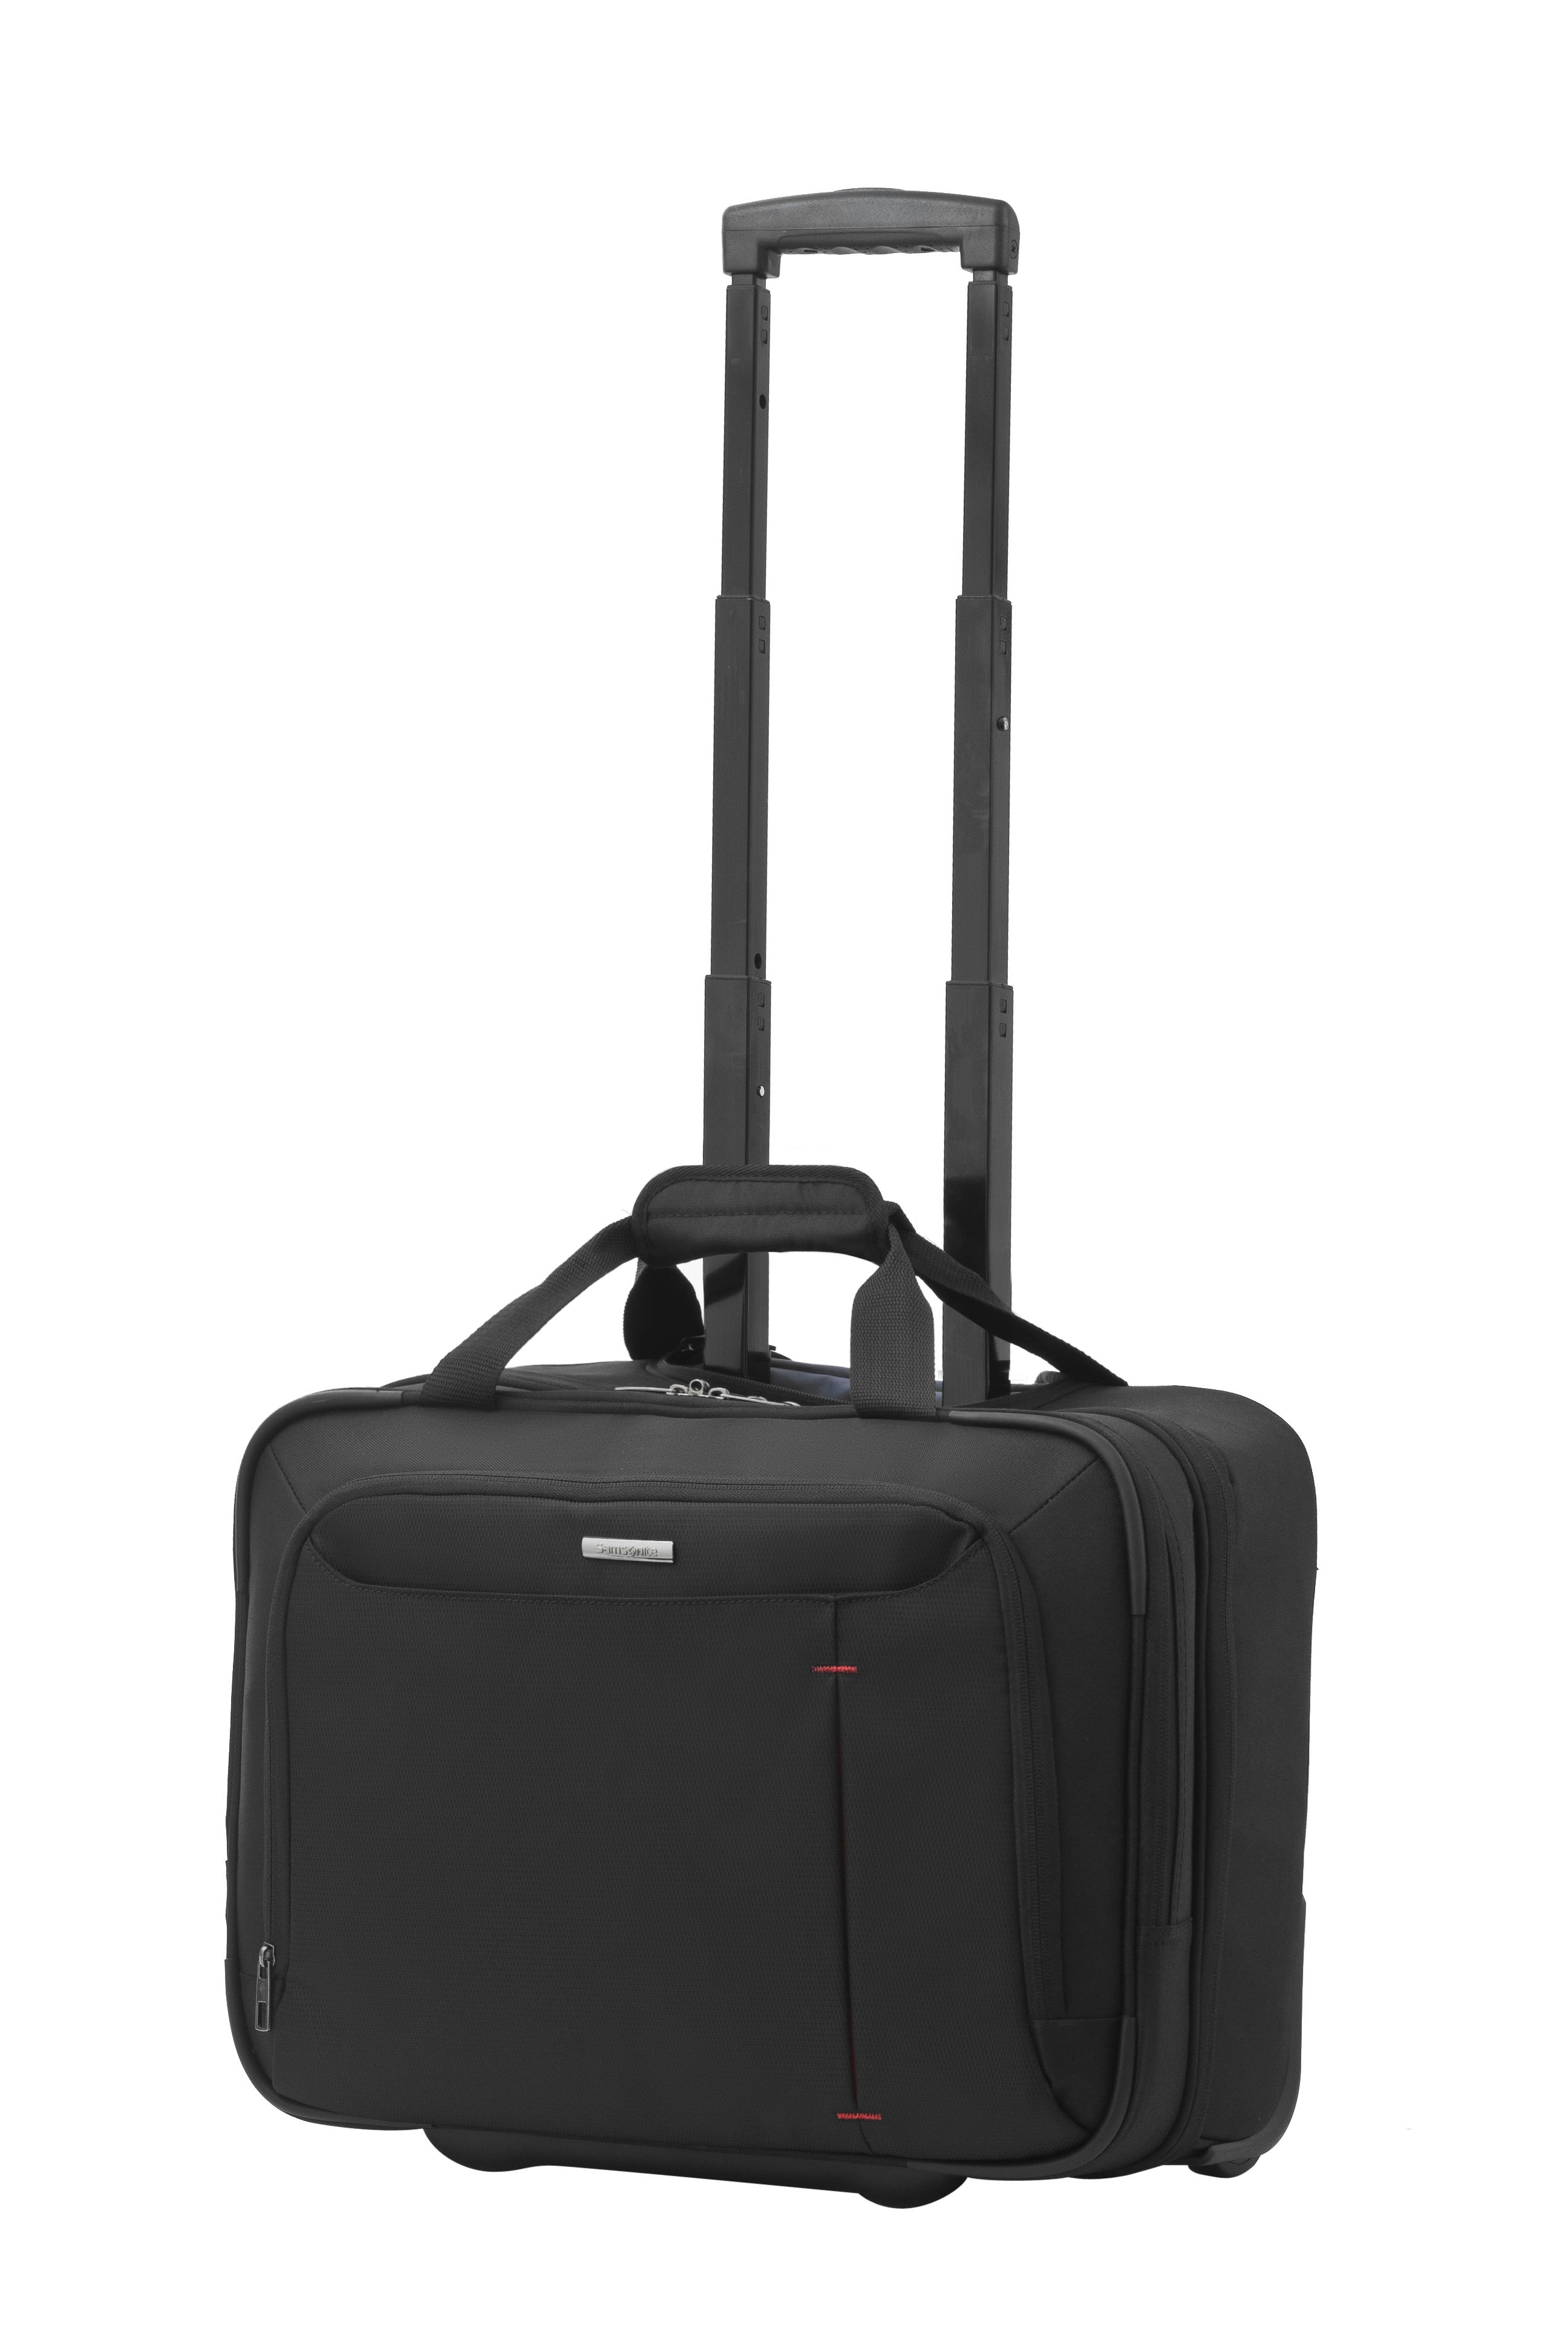 Samsonite Guard IT rolling tote Black